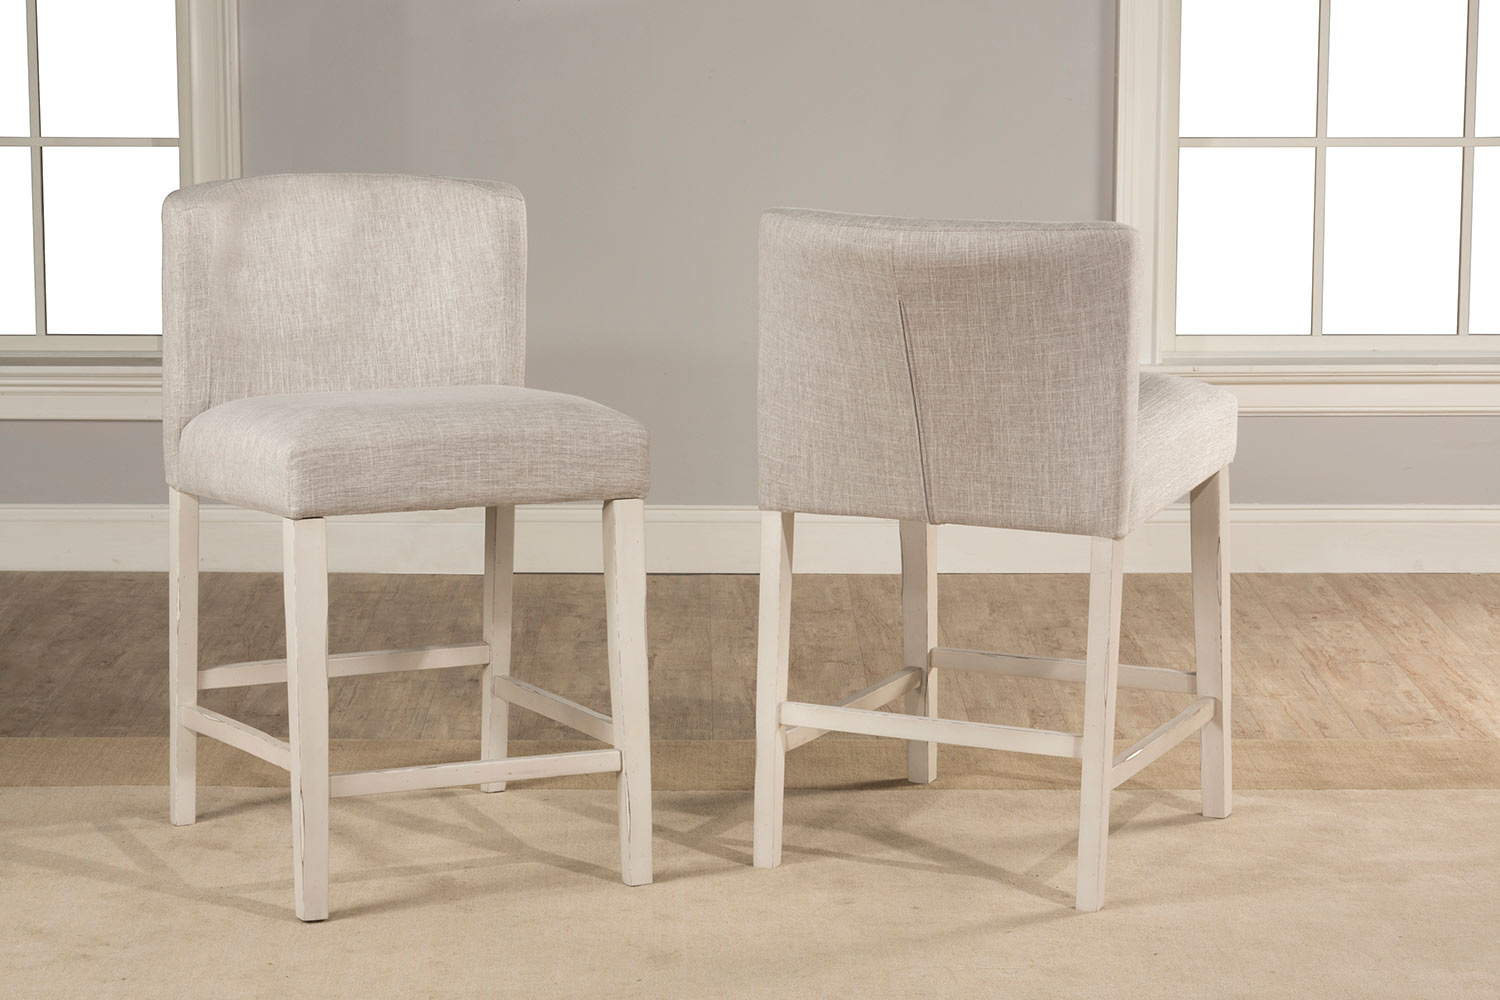 Hillsdale Clarion Non-Swivel Wing Arm Counter Height Stool - Sea White - Fog Fabric